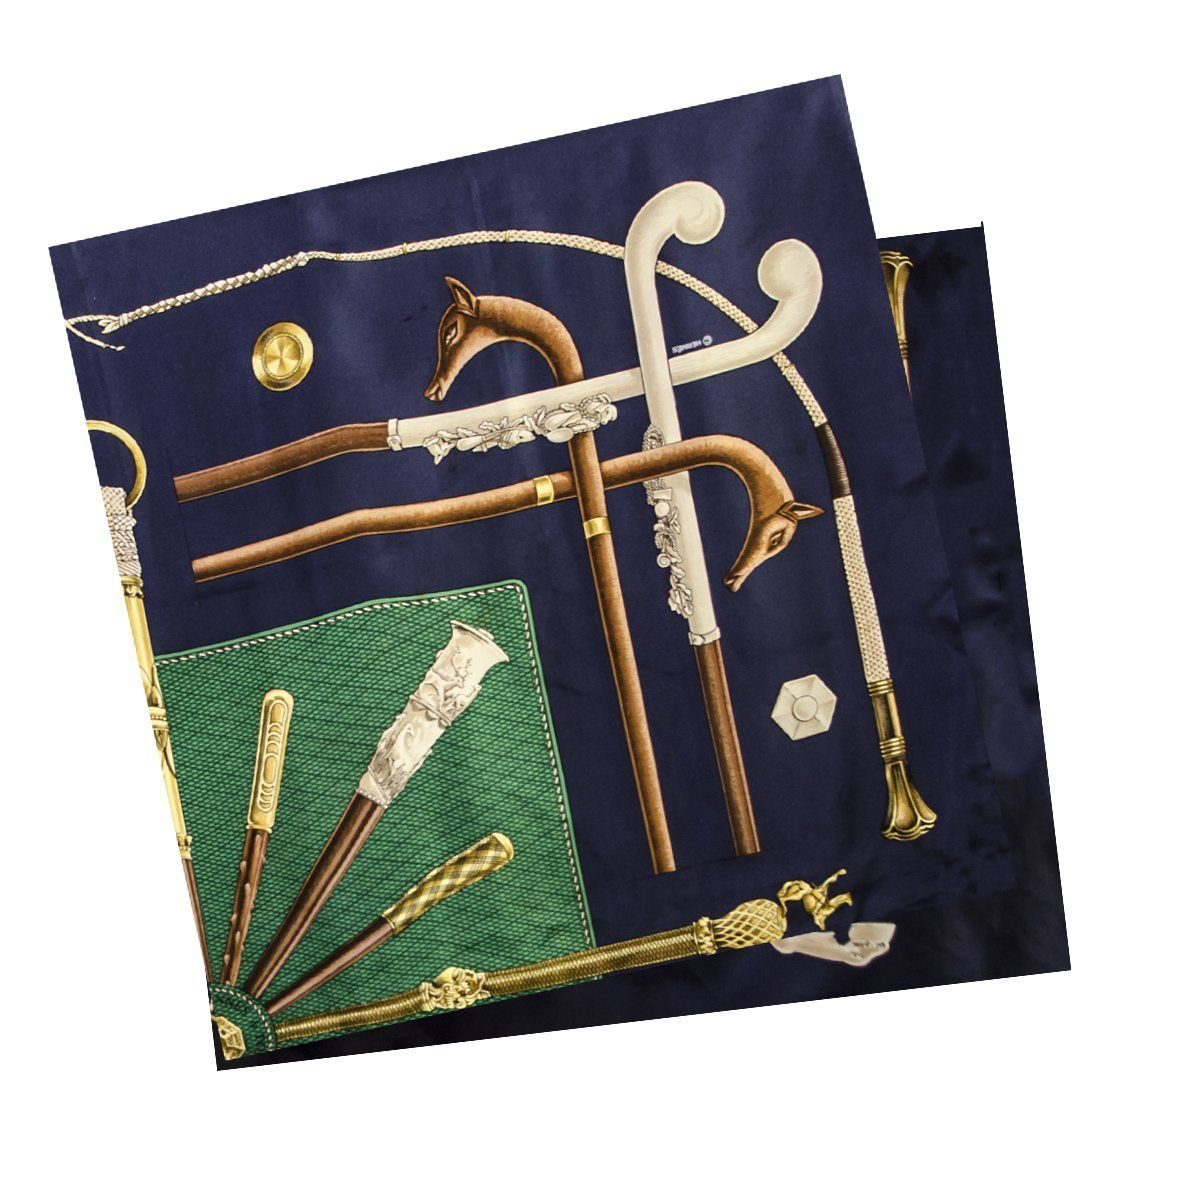 Vintage Hermes Silk Scarf, Walking Sticks, Cannes et Pommeaux, Françoise De La Perriere, Navy Blue & Green